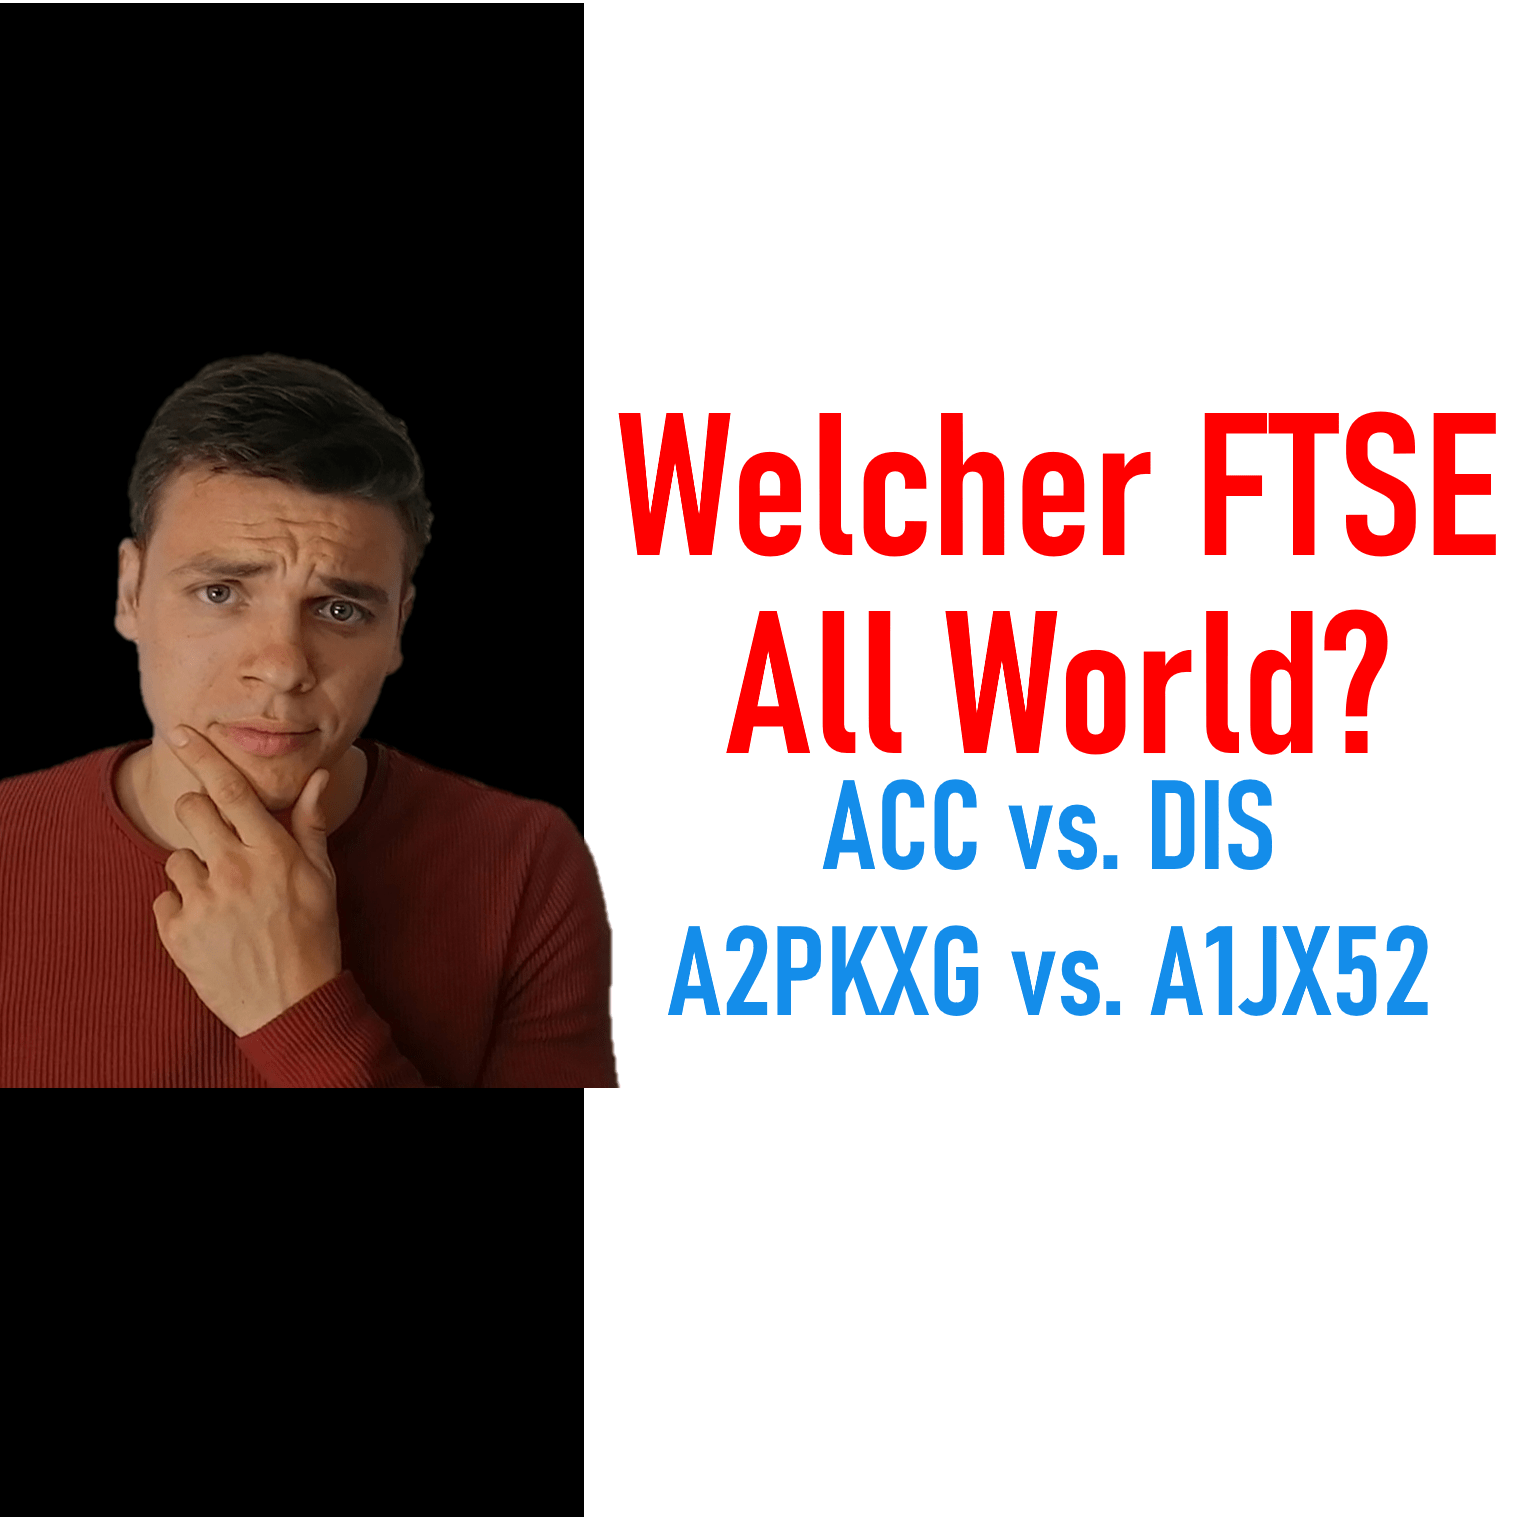 You are currently viewing Vanguard FTSE All World – A2PKXG vs A1JX52 – Welcher ist besser?